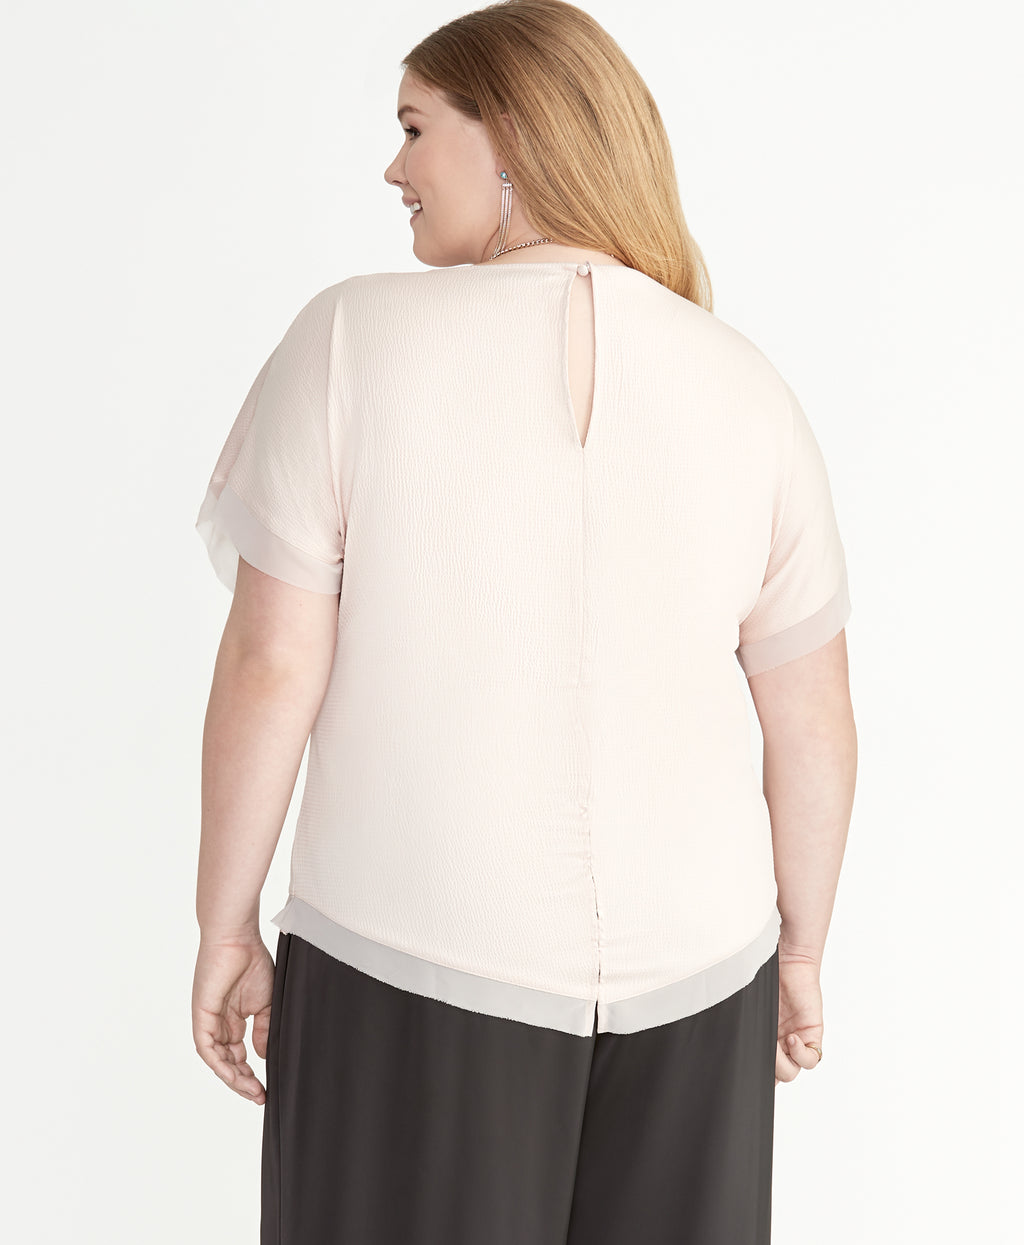 Reagan Satin Top | Blush